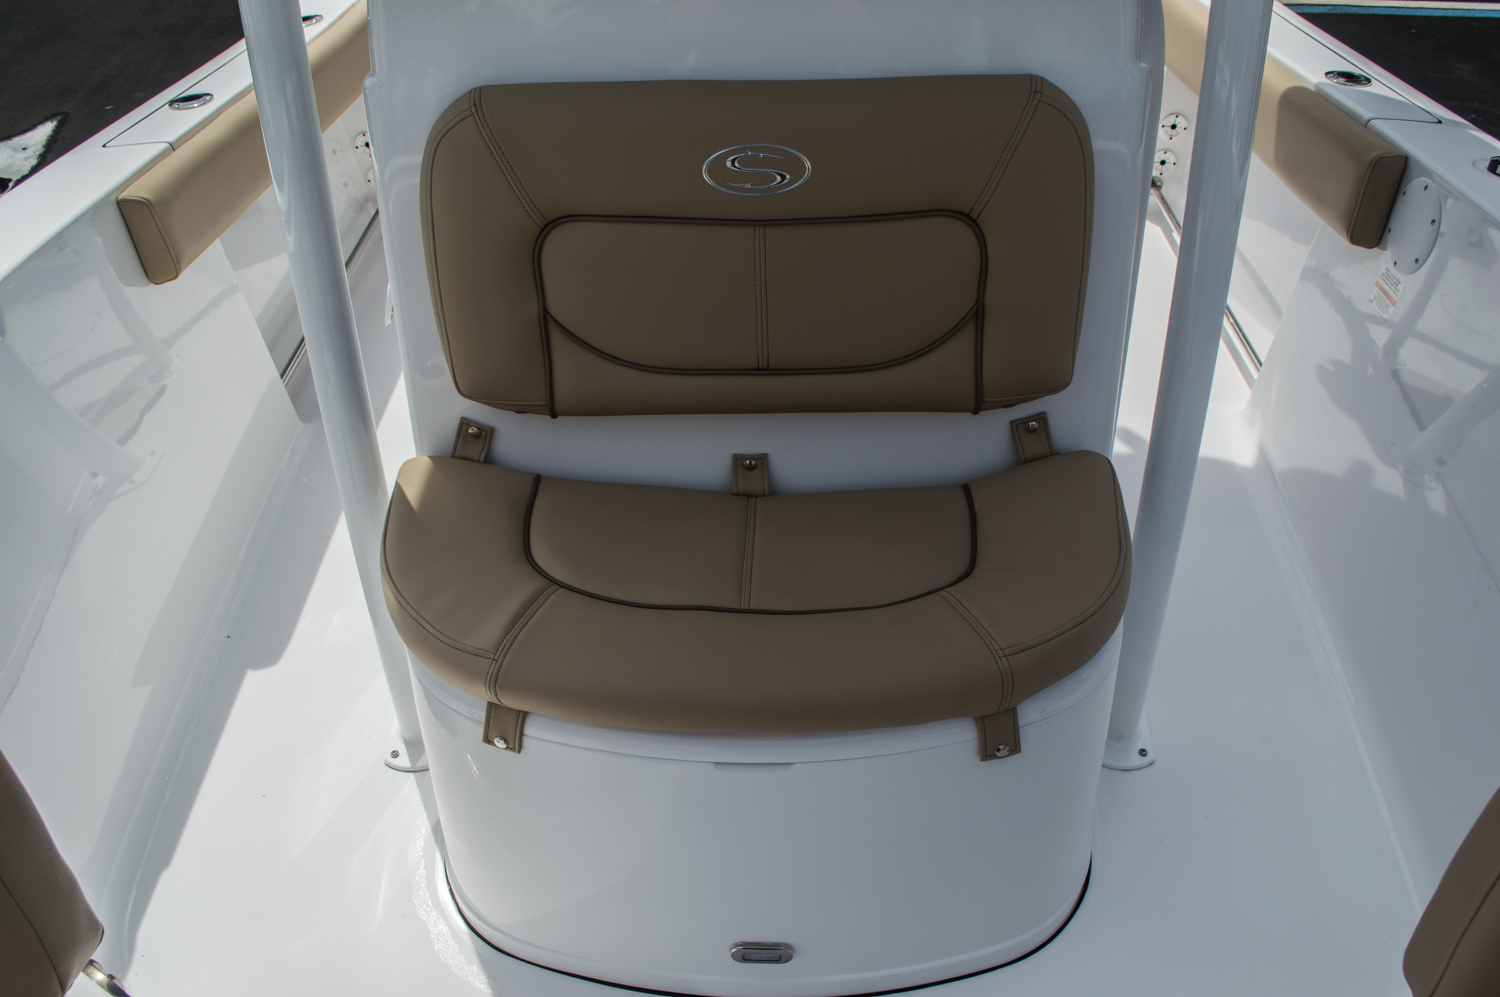 Thumbnail 22 for New 2016 Sportsman Open 212 Center Console boat for sale in Miami, FL